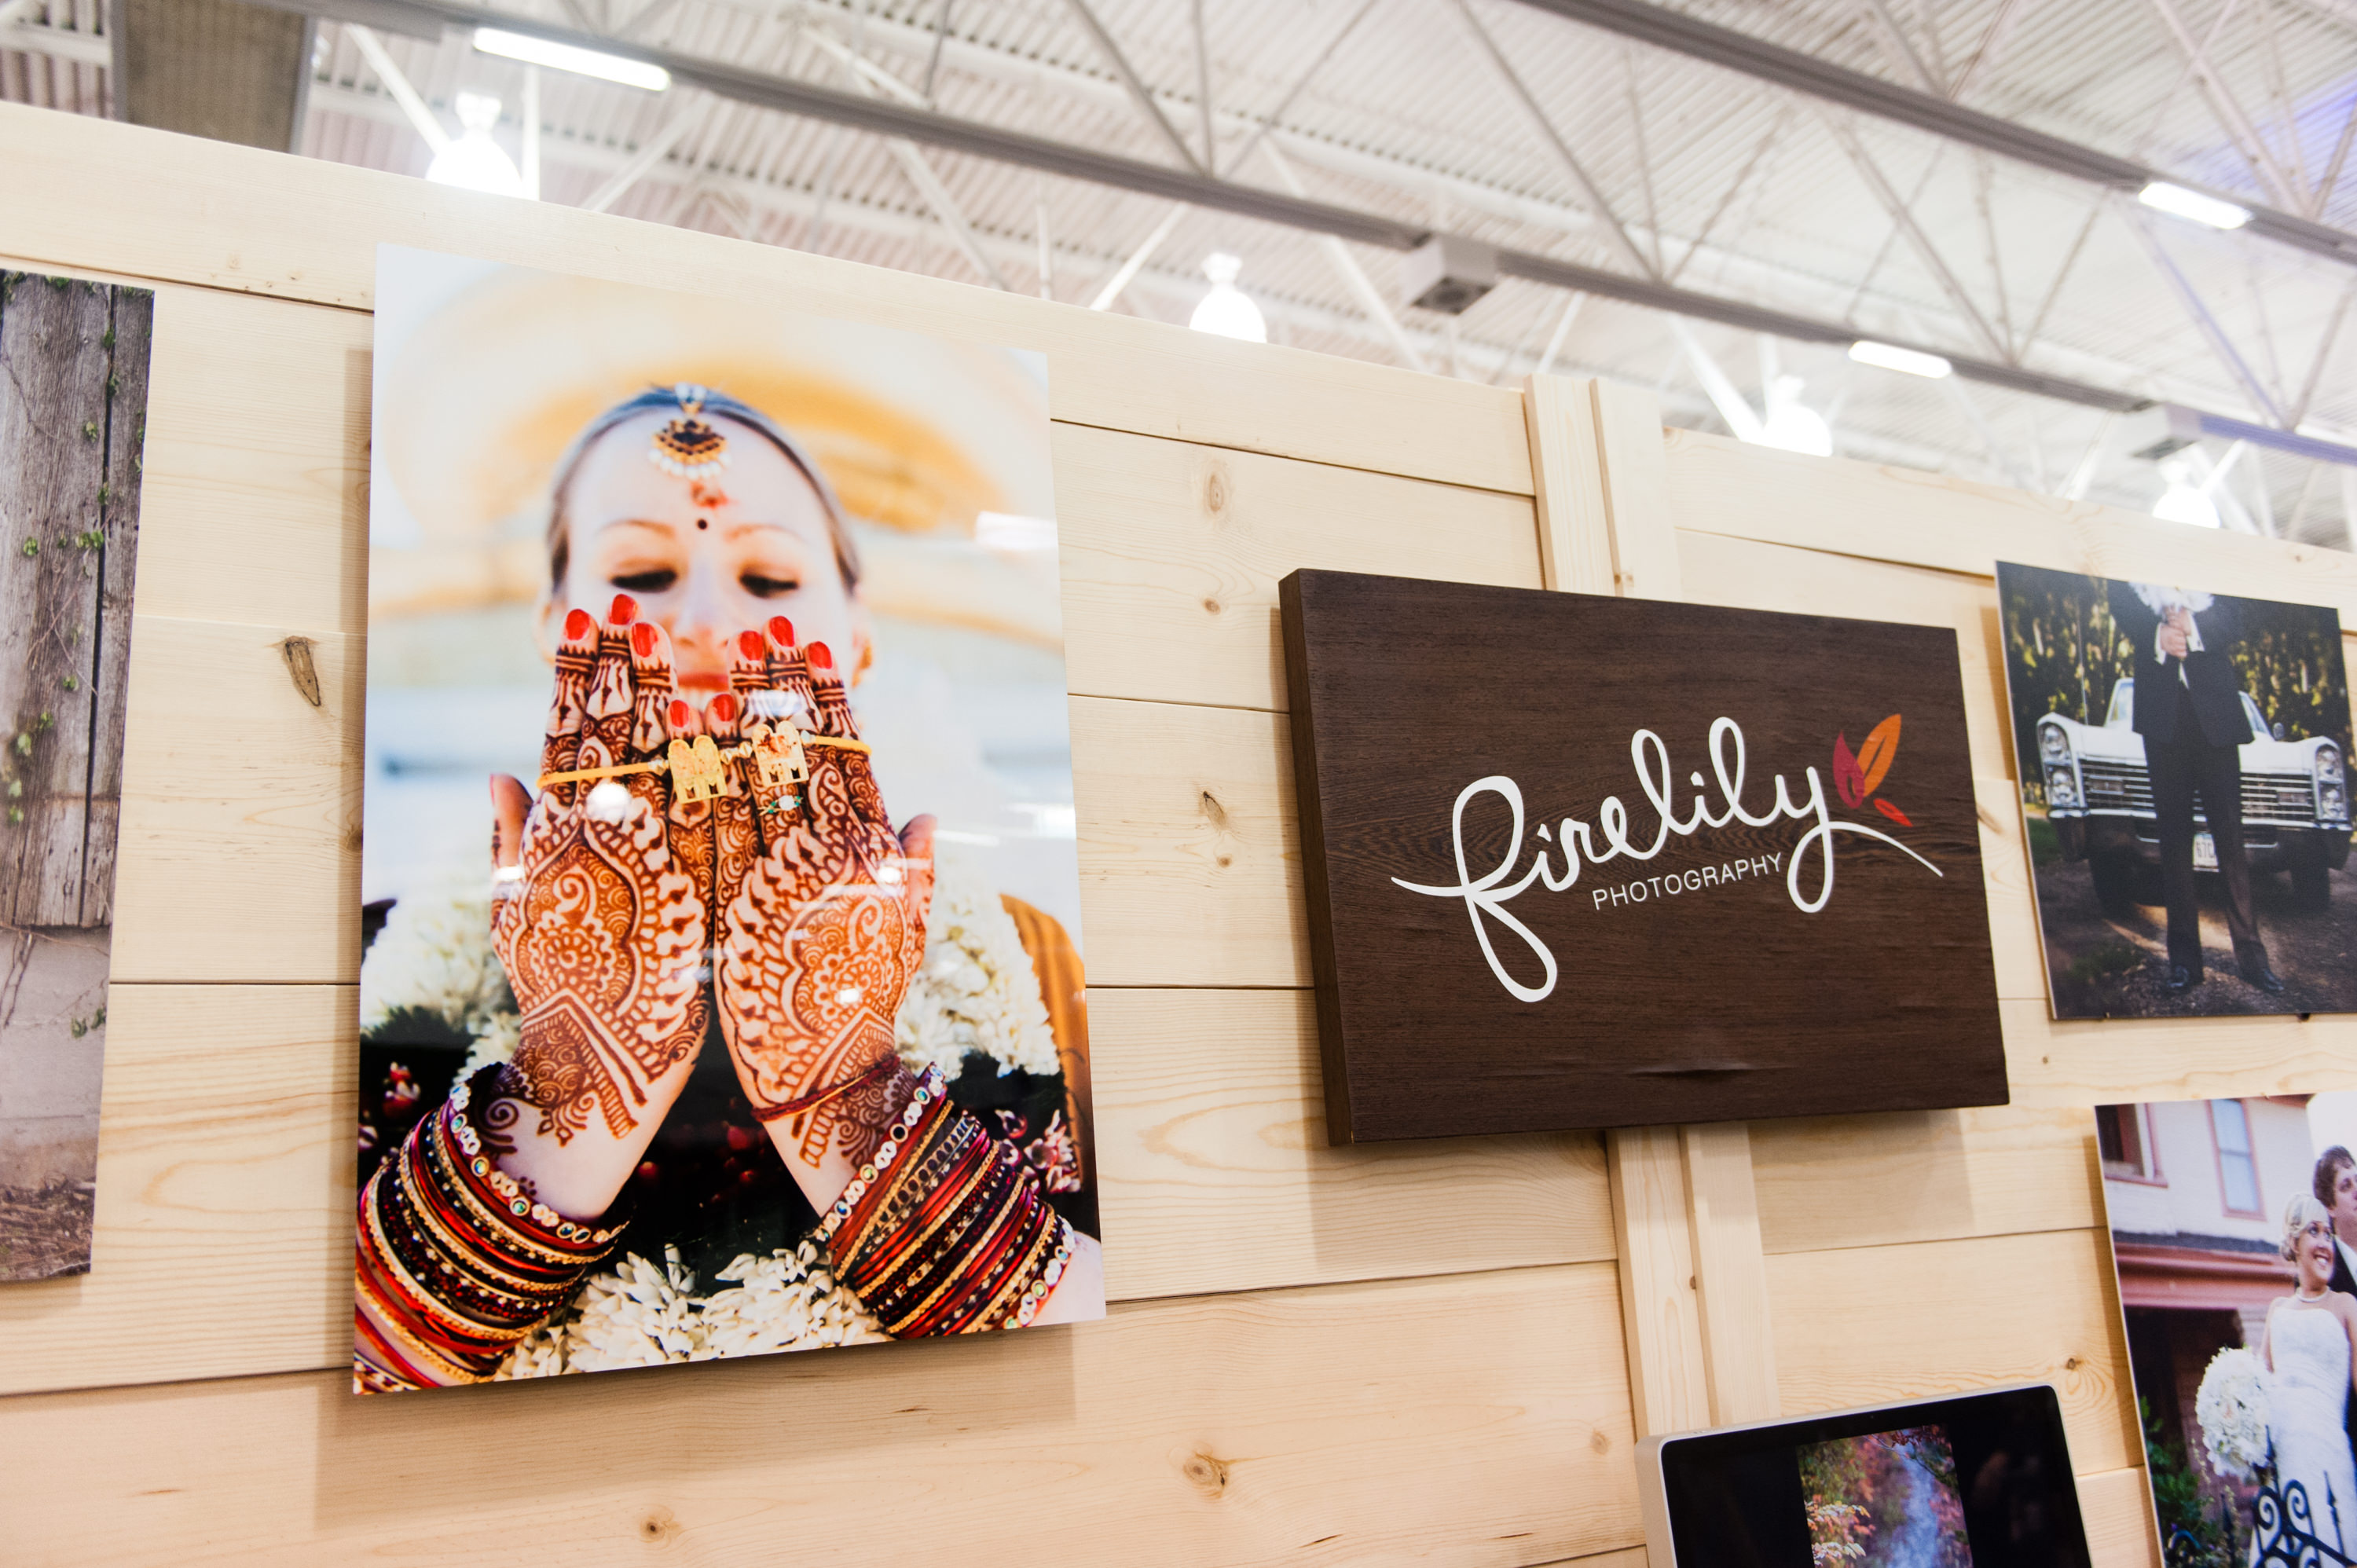 Firelily Photography Madison, WI 2017 Winter Bridal Show Booth | Stunning metal print from Hindu wedding photography in Chicago, IL